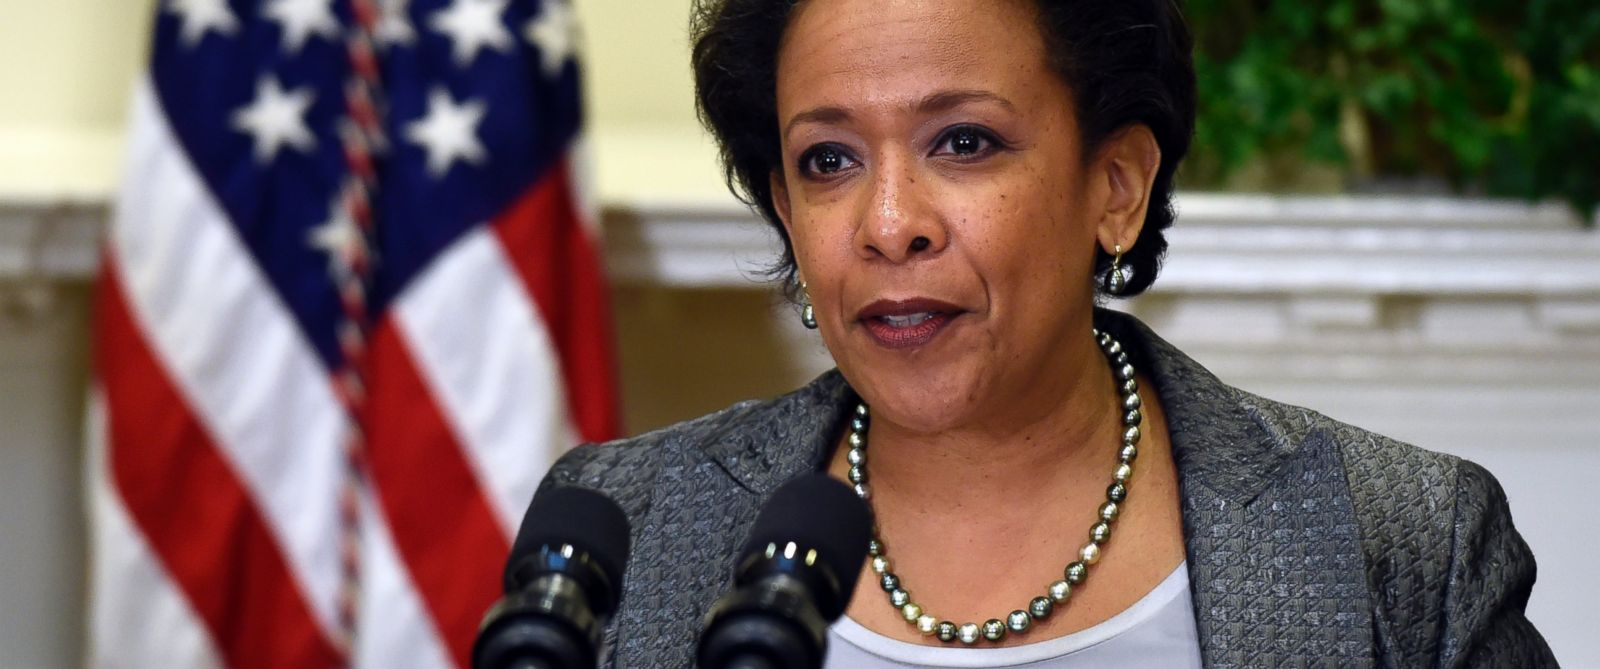 loretta e lynch videos at abc news video archive at abcnews com attorney general loretta lynch calls for understanding in issue of the day facing our nation